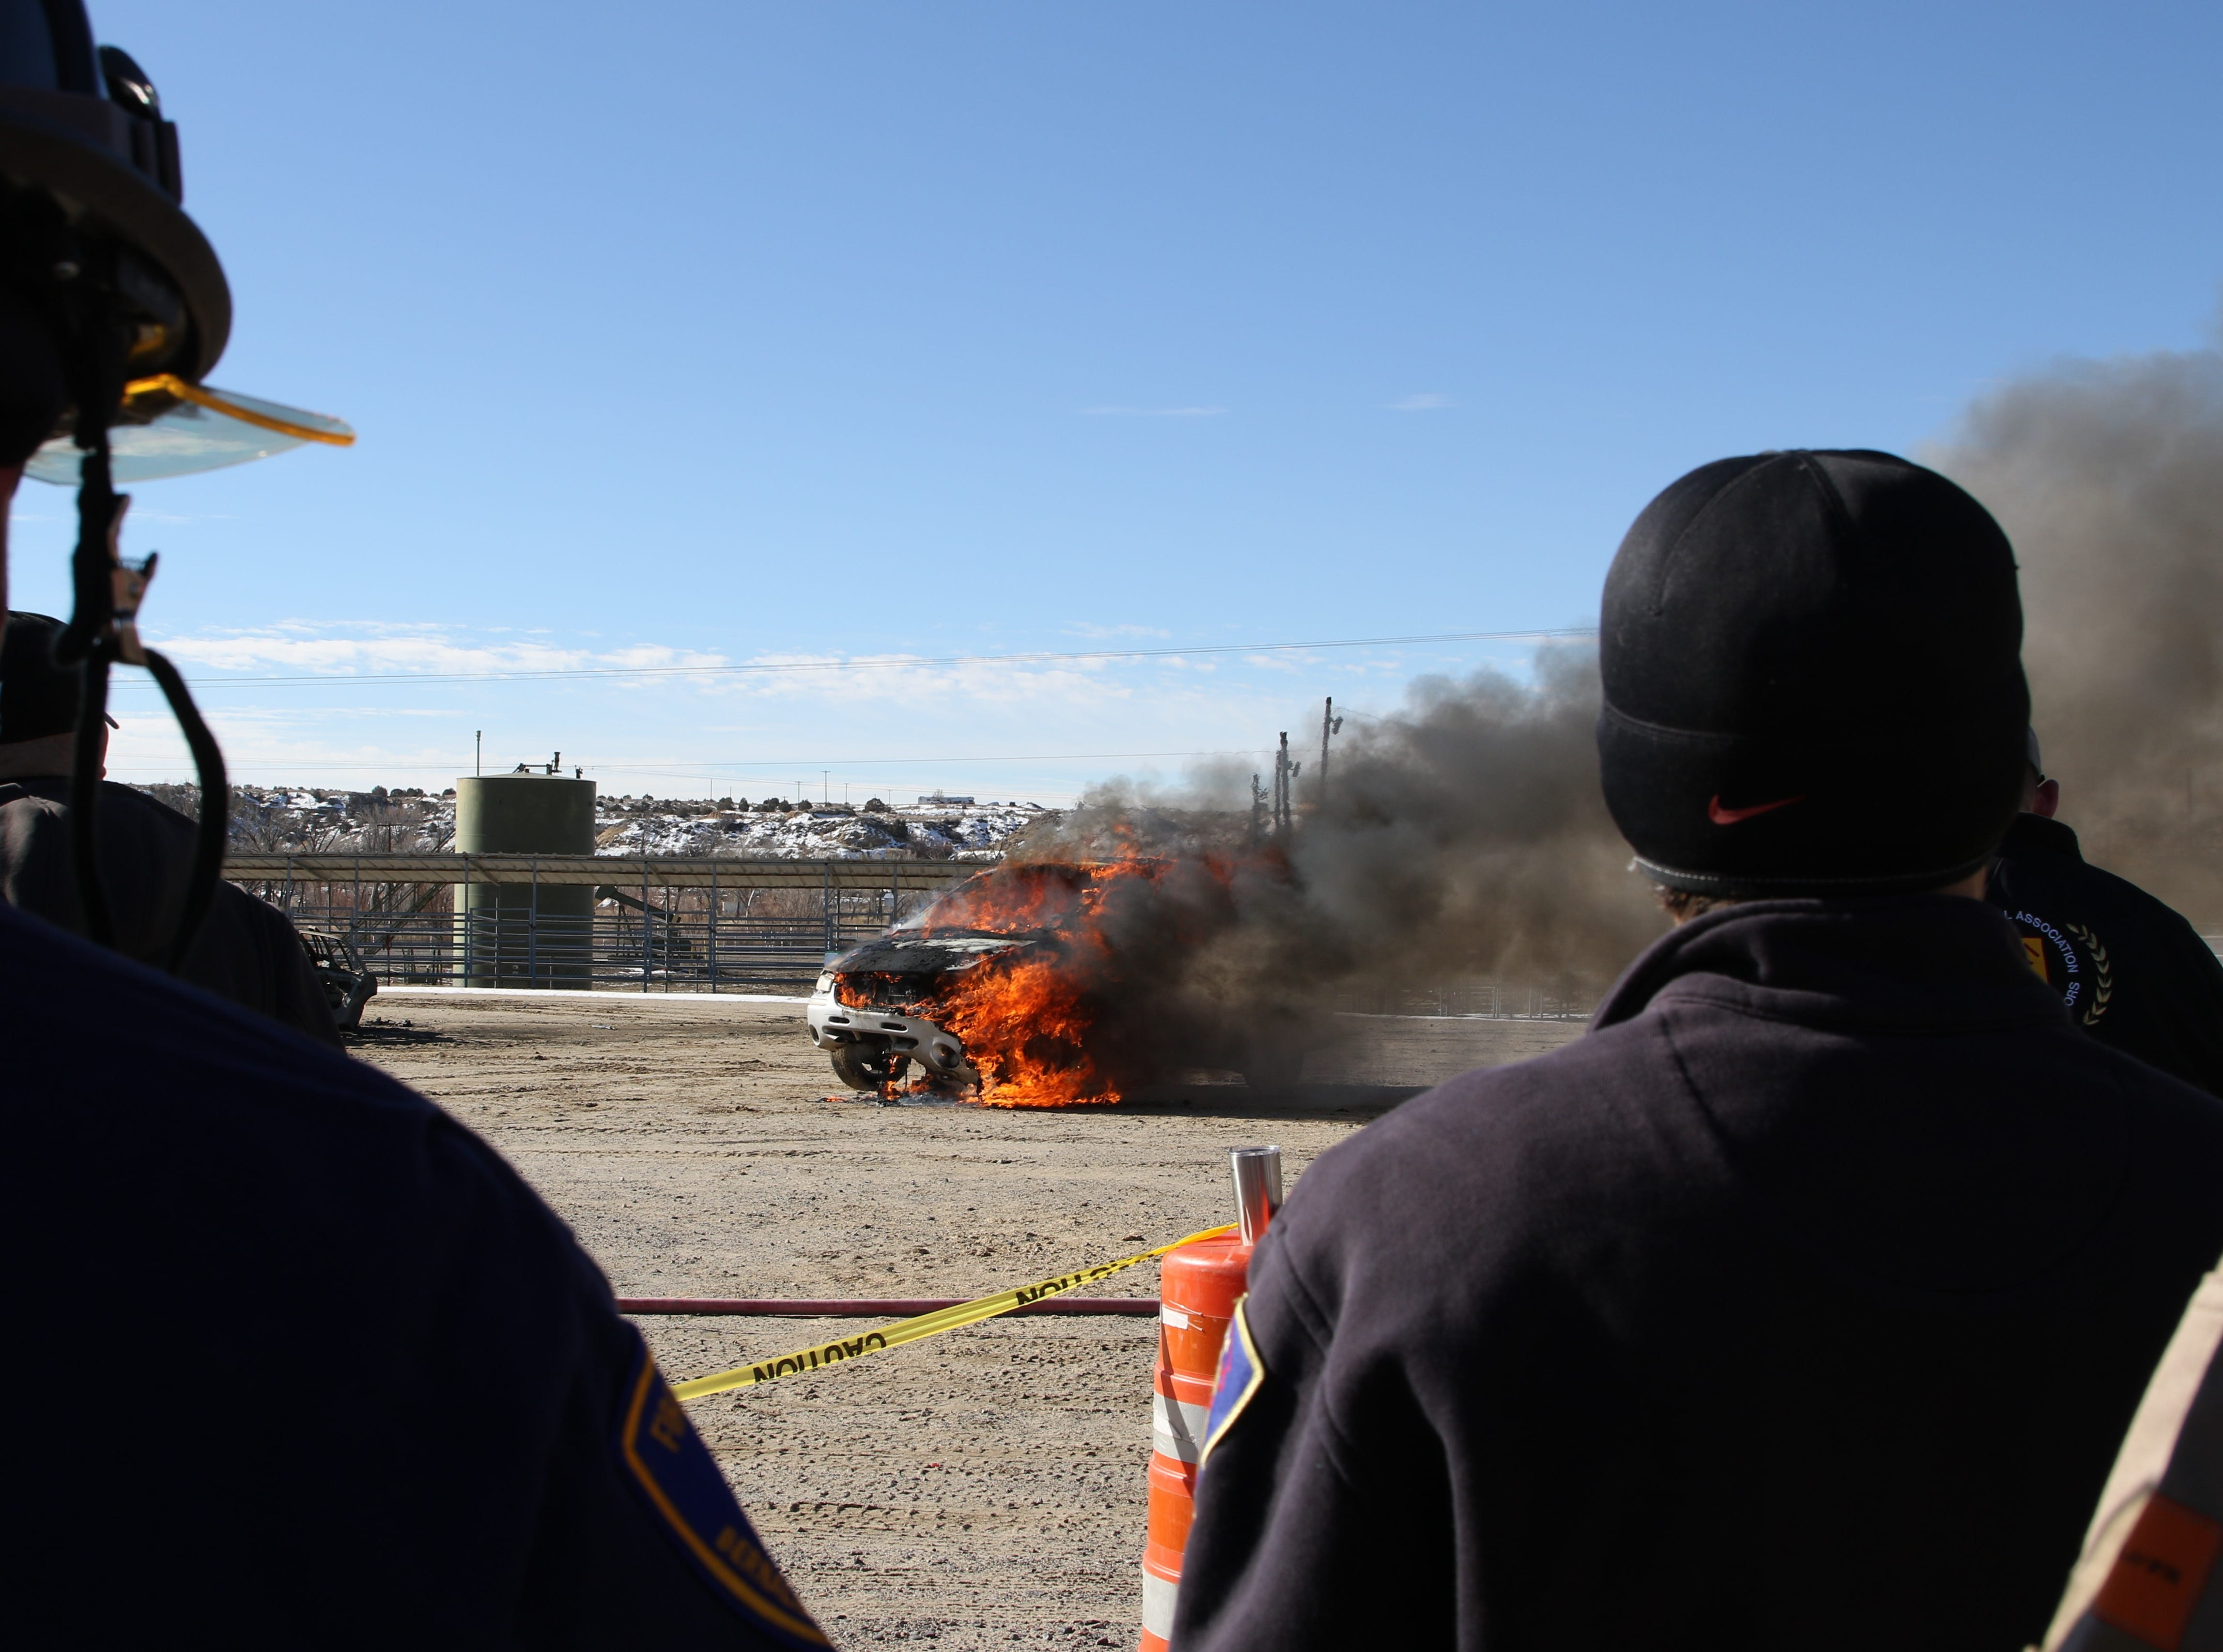 Fire investigators observe a mock auto fire as part of training on Wednesday by the International Association of Arson Investigators.